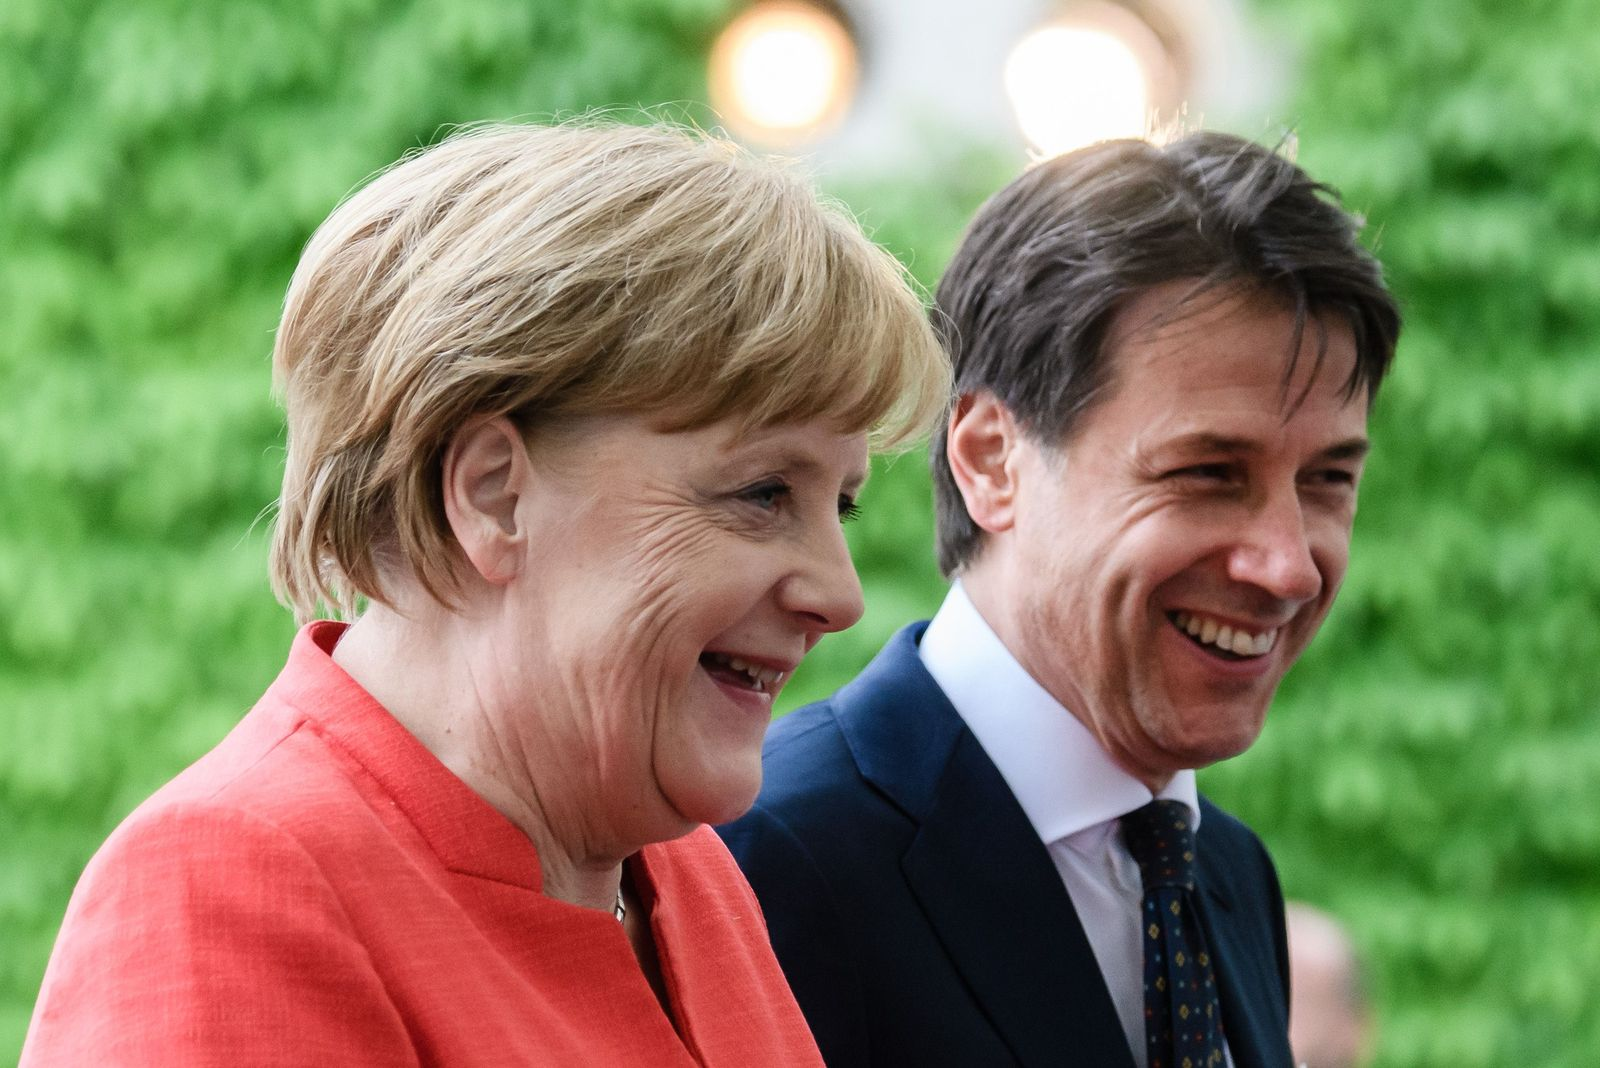 Prime Minister of Italy Giuseppe Conte visits Berlin, Germany - 18 Jun 2018